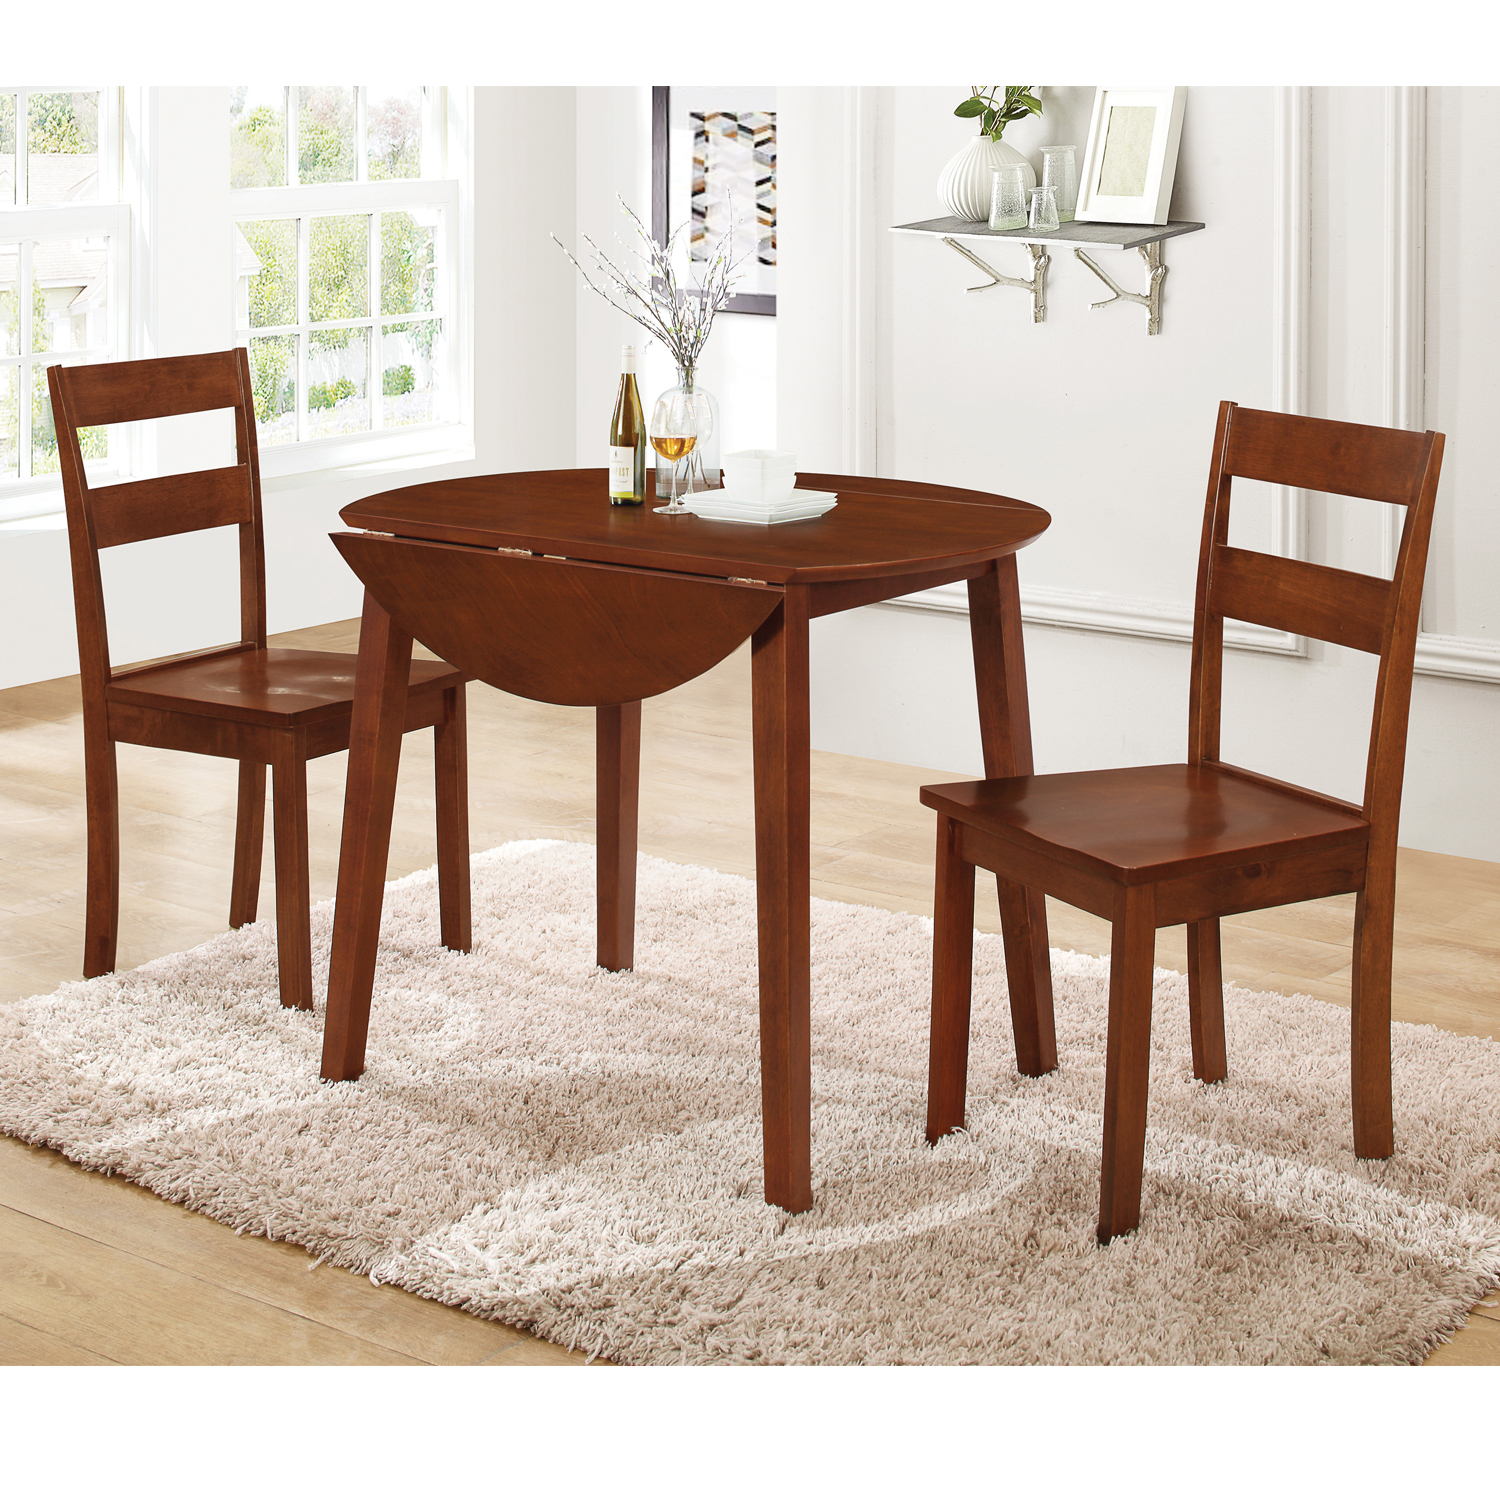 Home Source Country Style 3 Piece Drop Leaf Dining Set